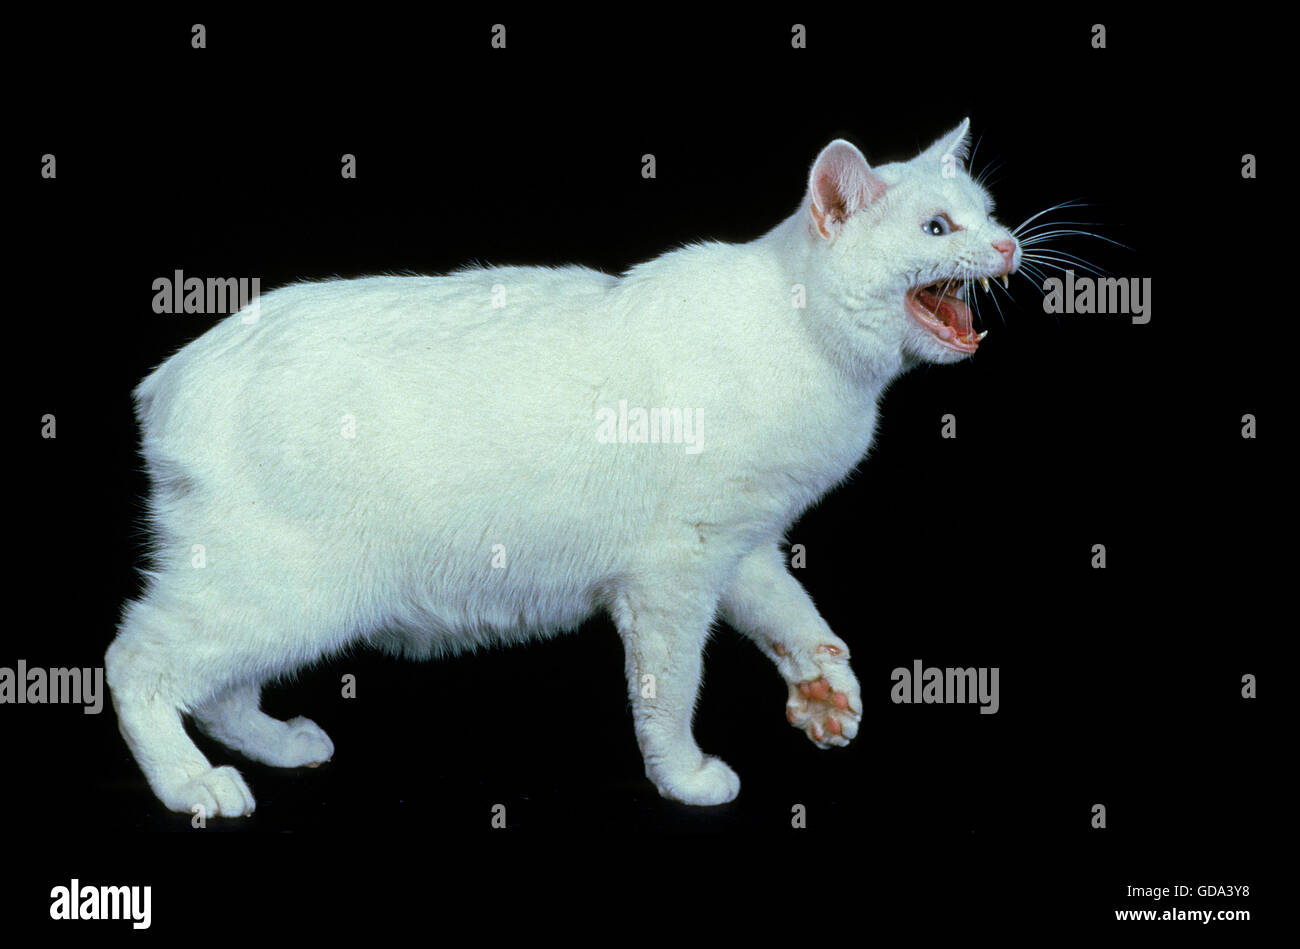 Manx Domestic Cat, Cat Breed without Tail, Adult Snarling against Black Background - Stock Image